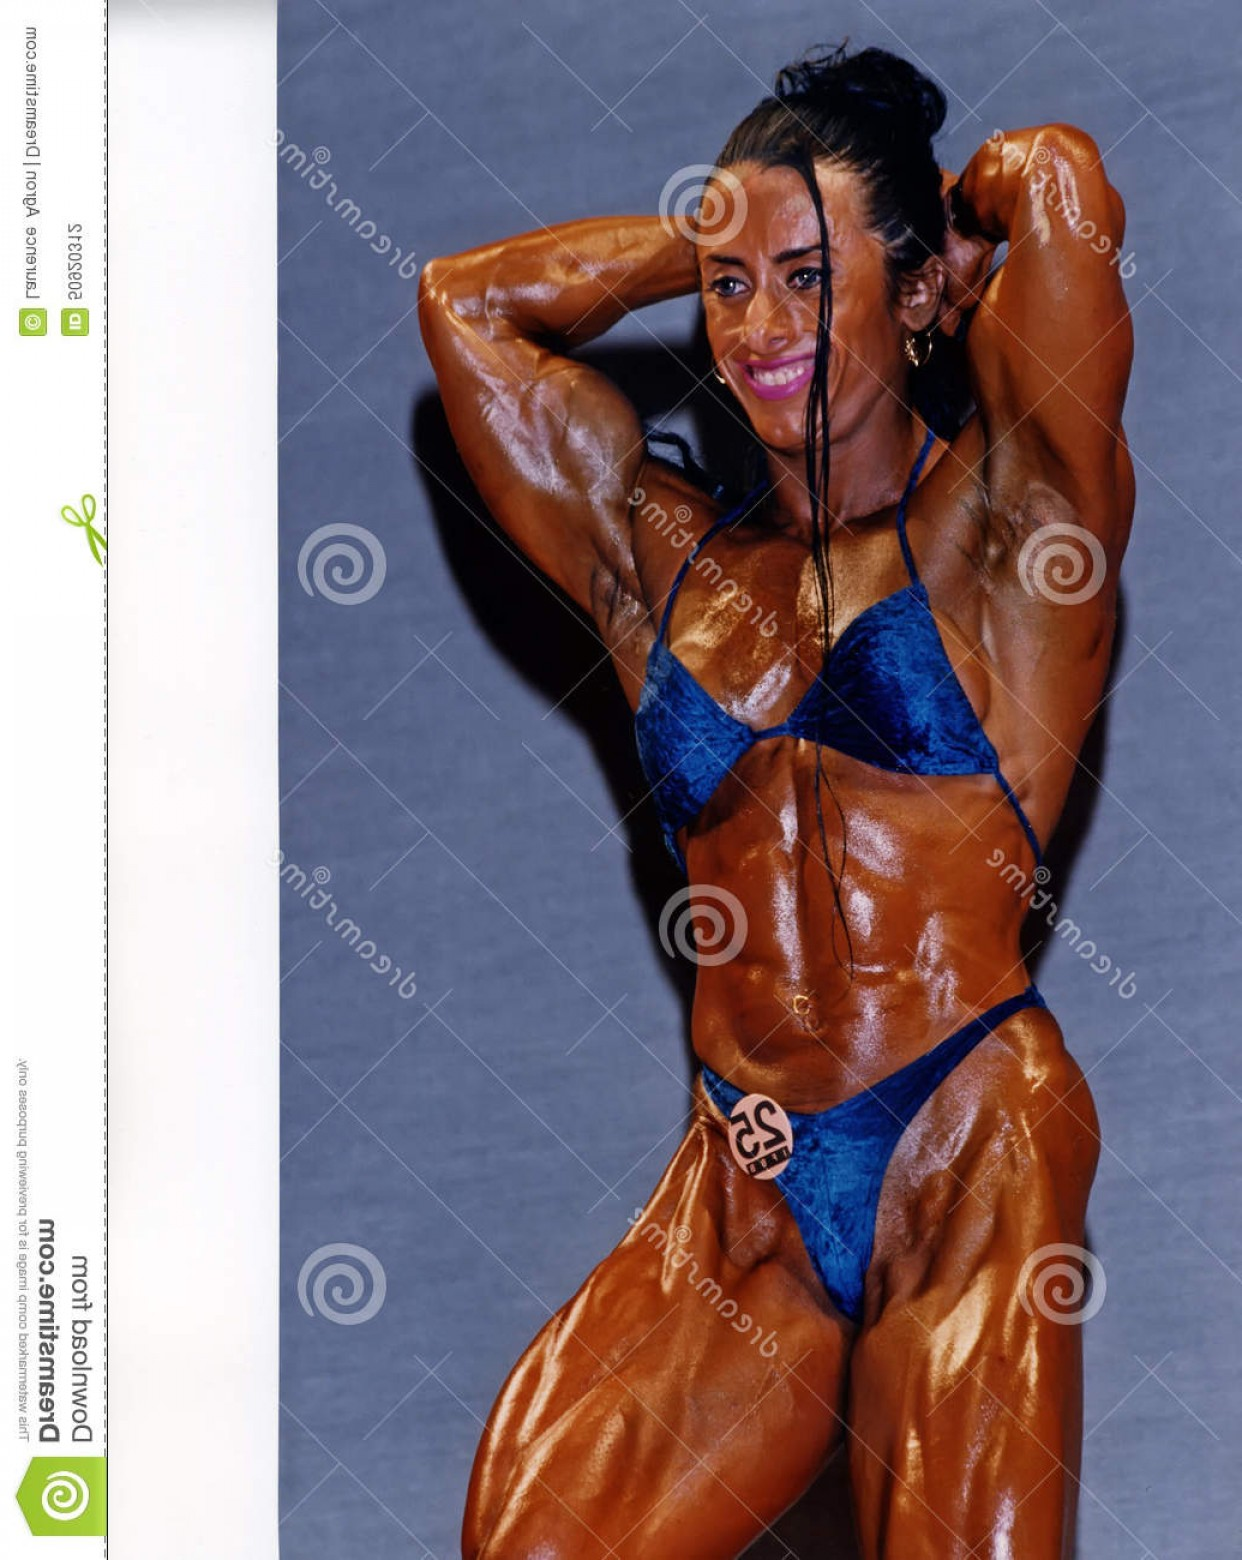 Vector Abstract Woman Bodybuilder Physique: Editorial Photography Brazilian Hardbody Monica Martin Brazil Displays Top Flight Physique Professional Woman Bodybuilder Massive Image